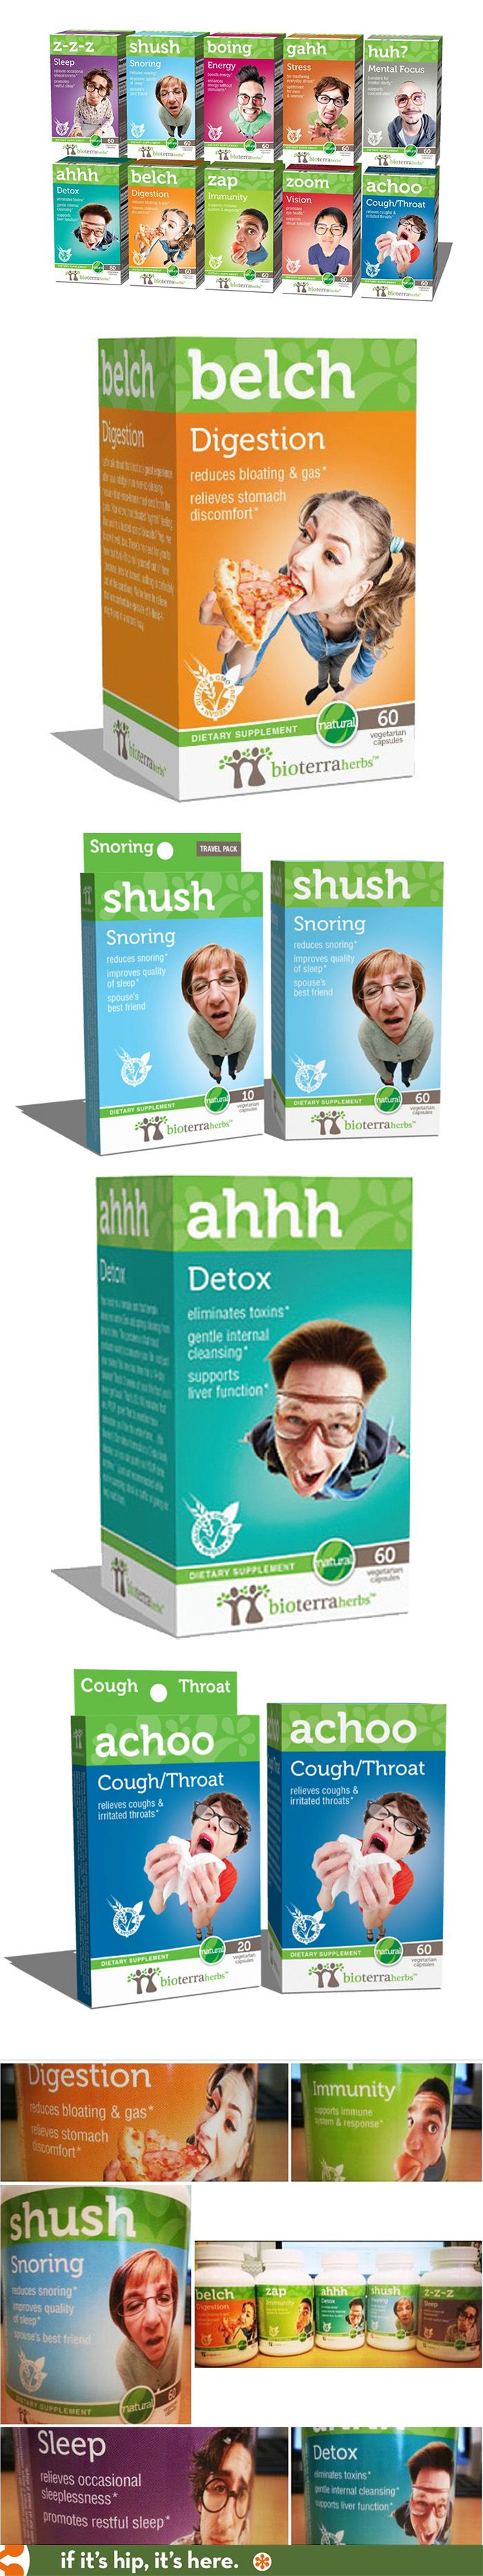 BioTerra Herbs has great fun packaging with wonderful product names and photography. PD